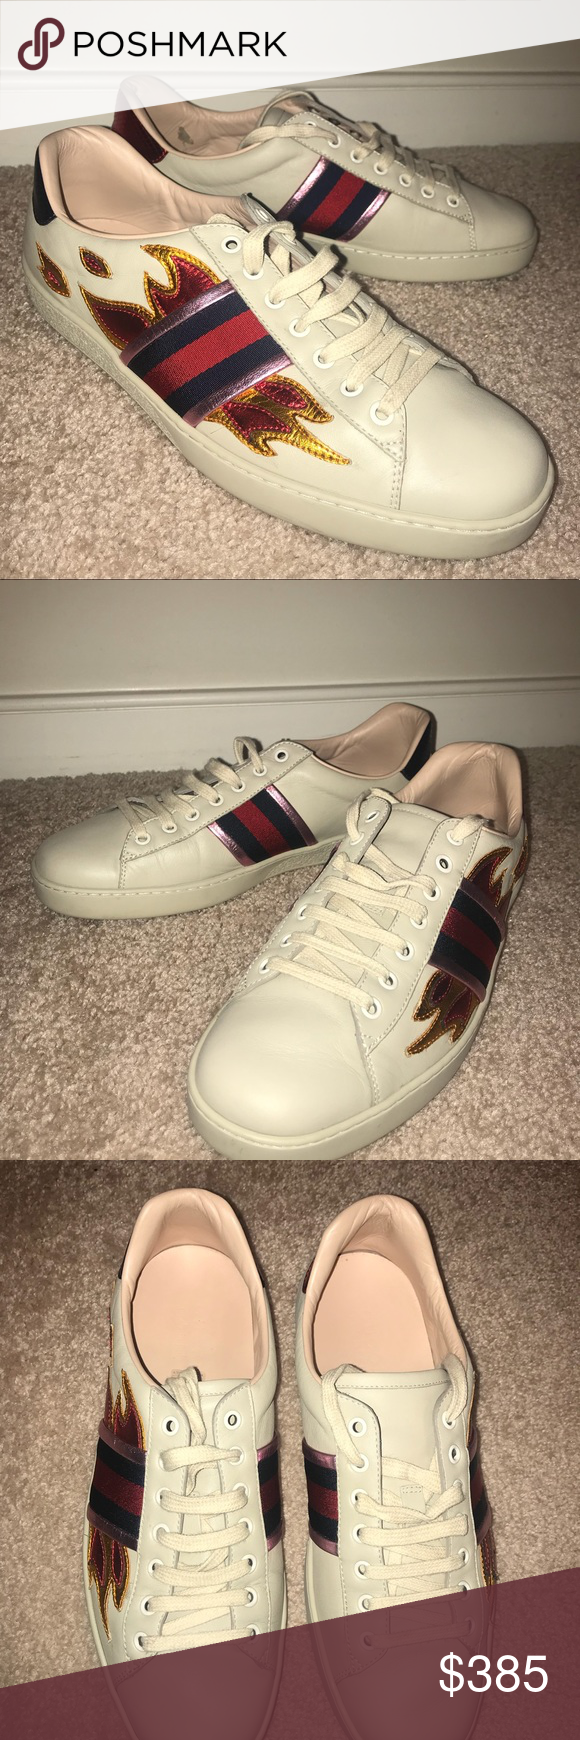 5c824ba395e82 Men s Creme Gucci Ace Embroidered Flame sneaker Another addition to the  stylish mans closet! Size